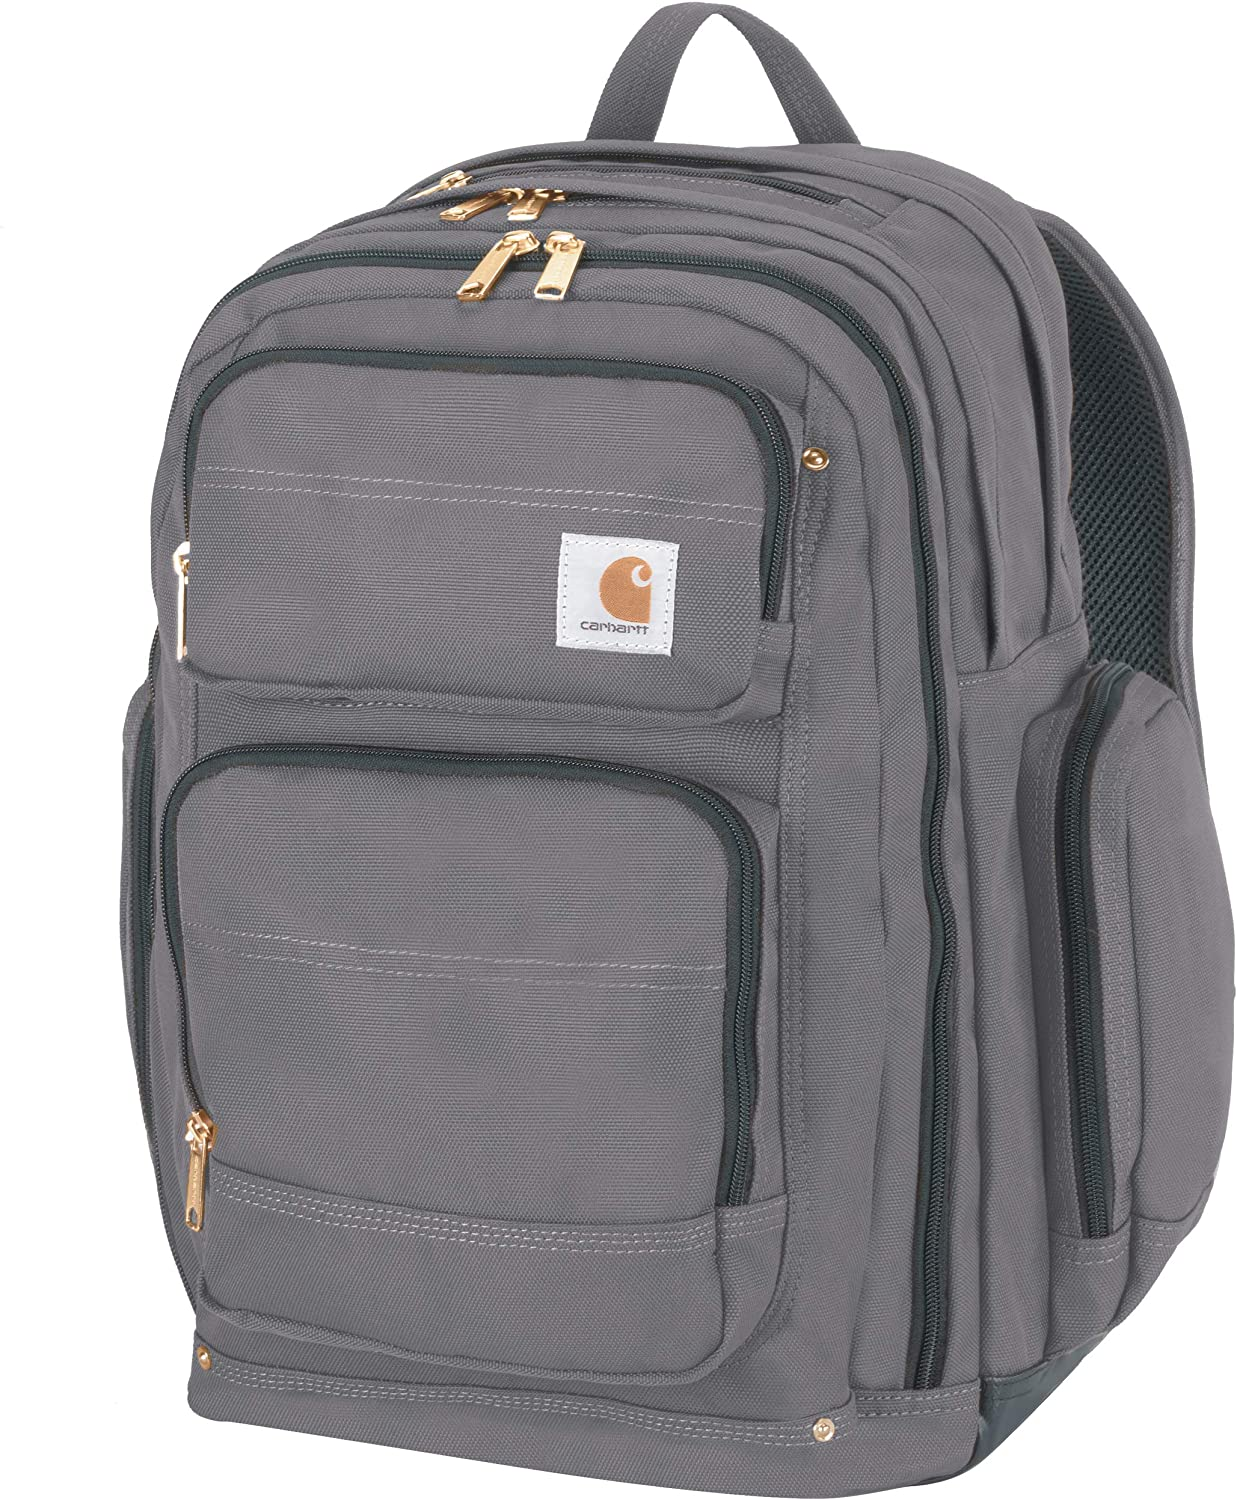 Legacy Deluxe Work Backpack Grey